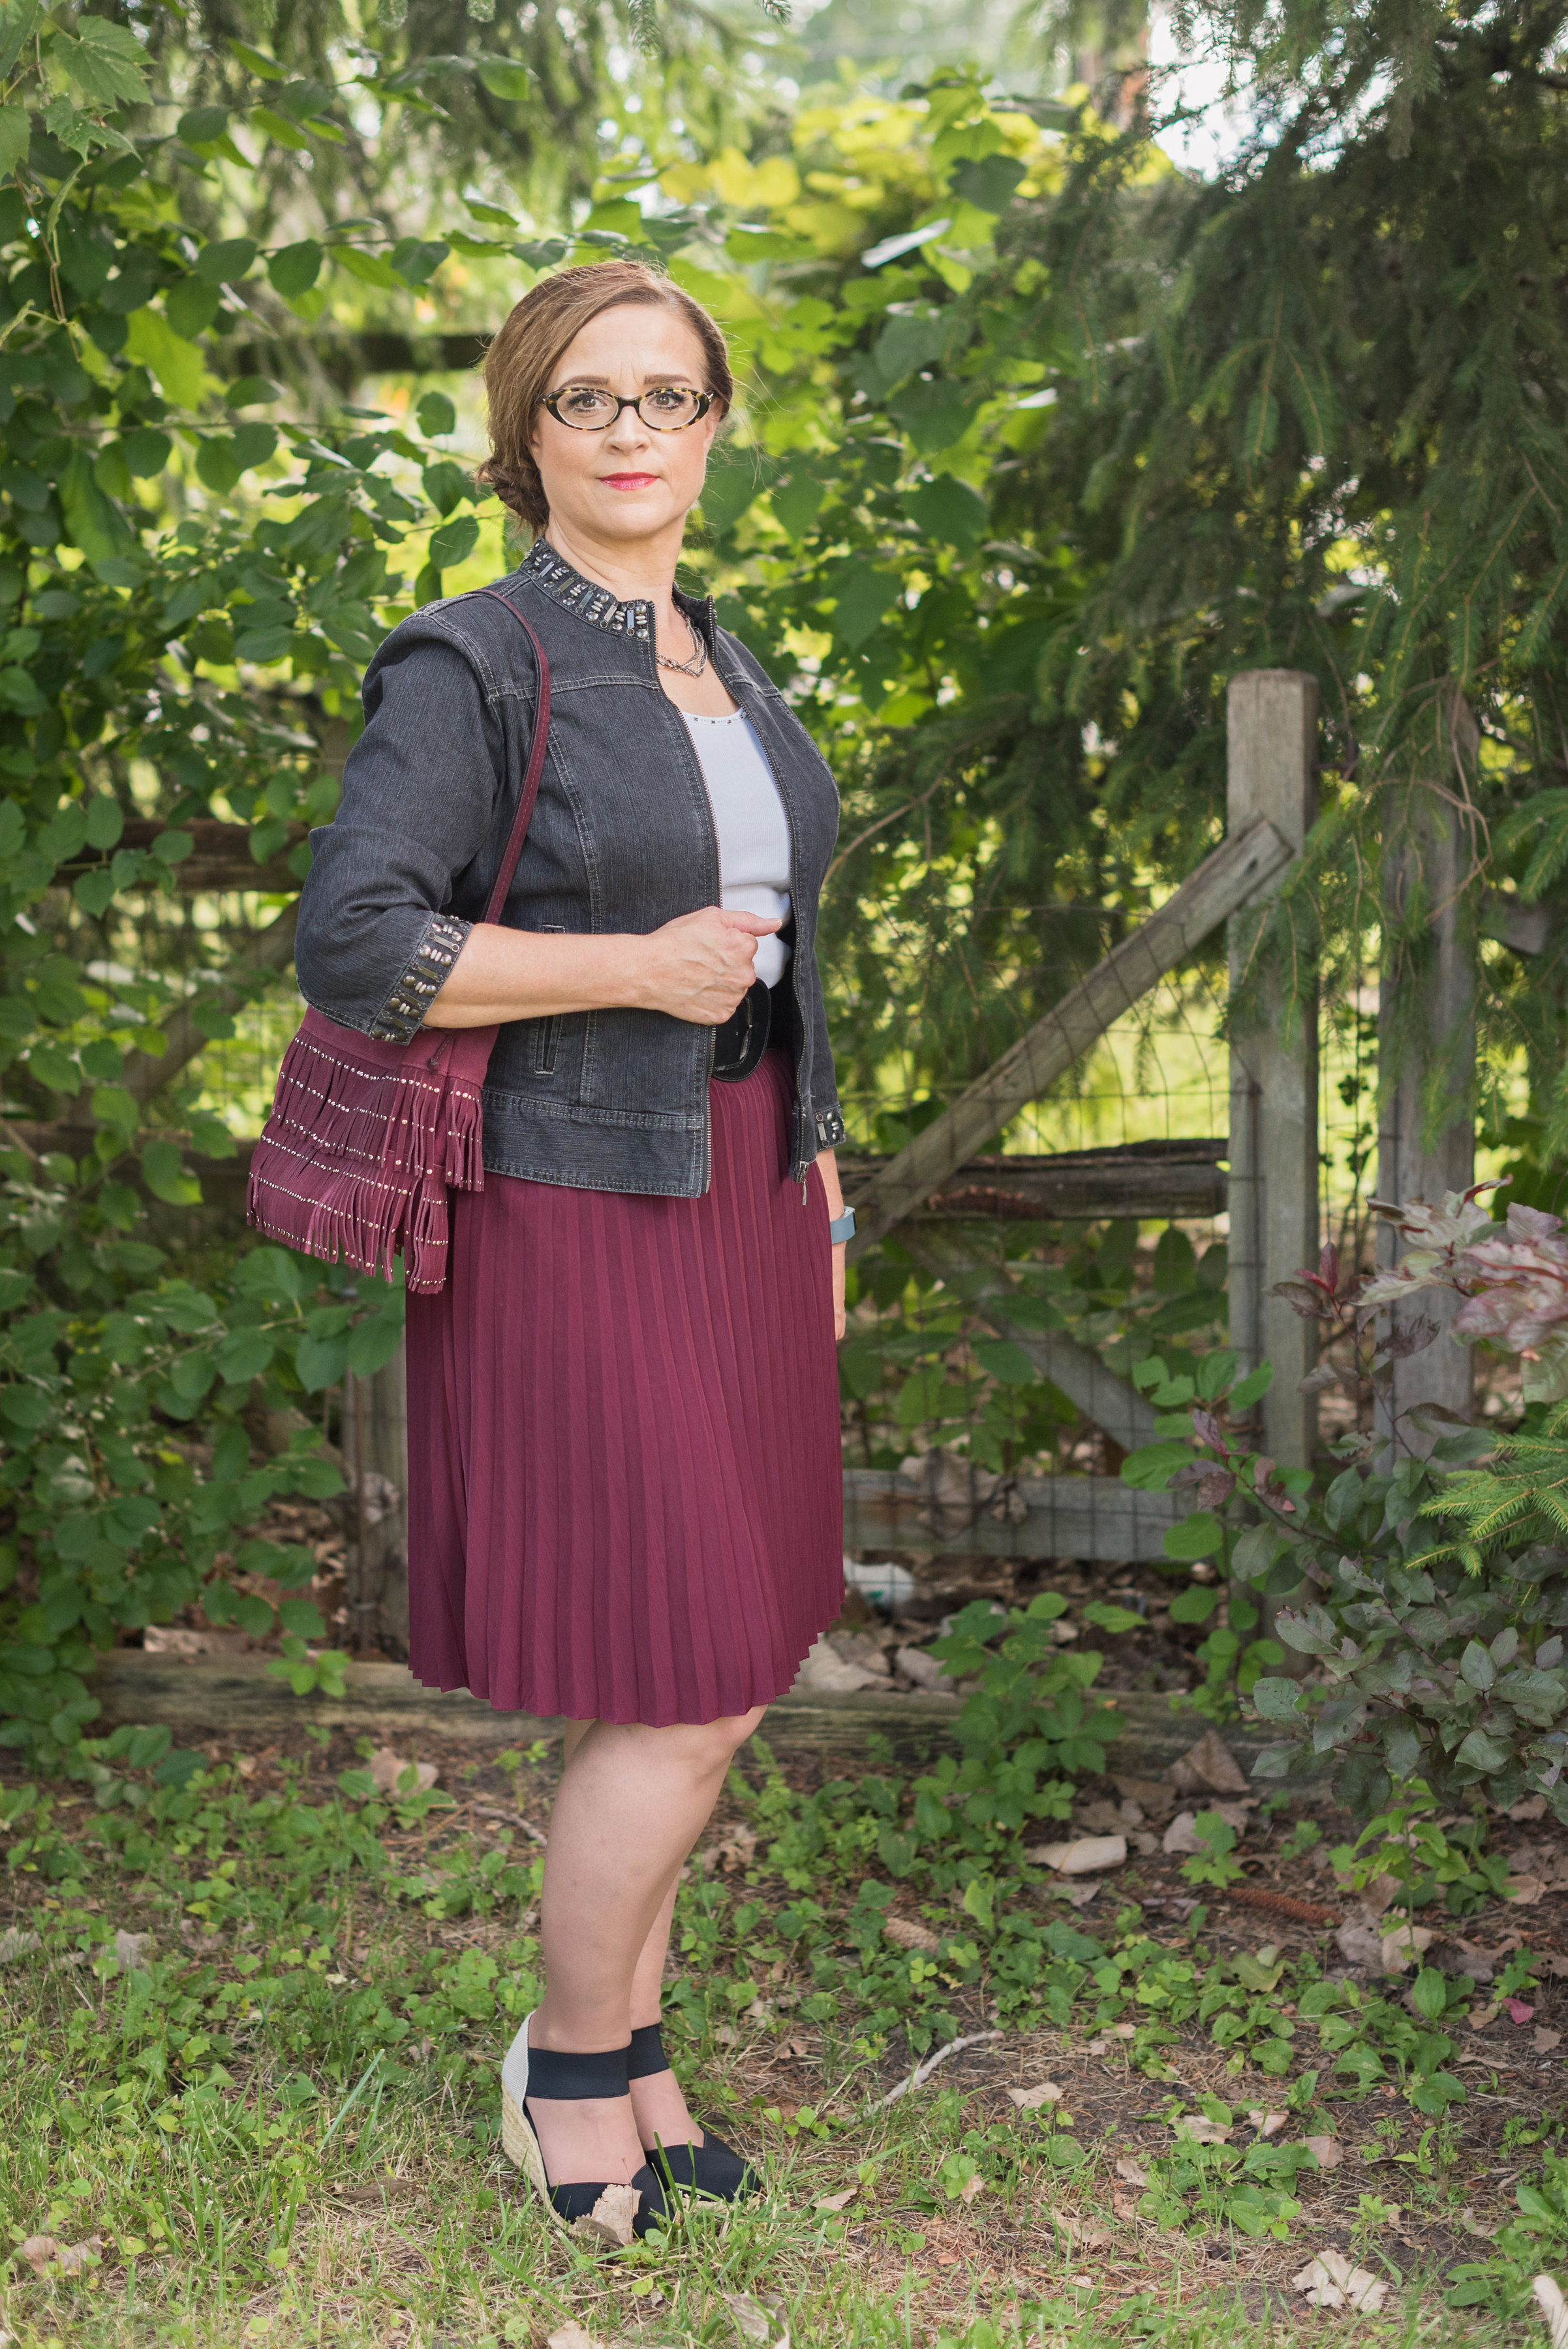 gray-maroon-outfit-6.jpg